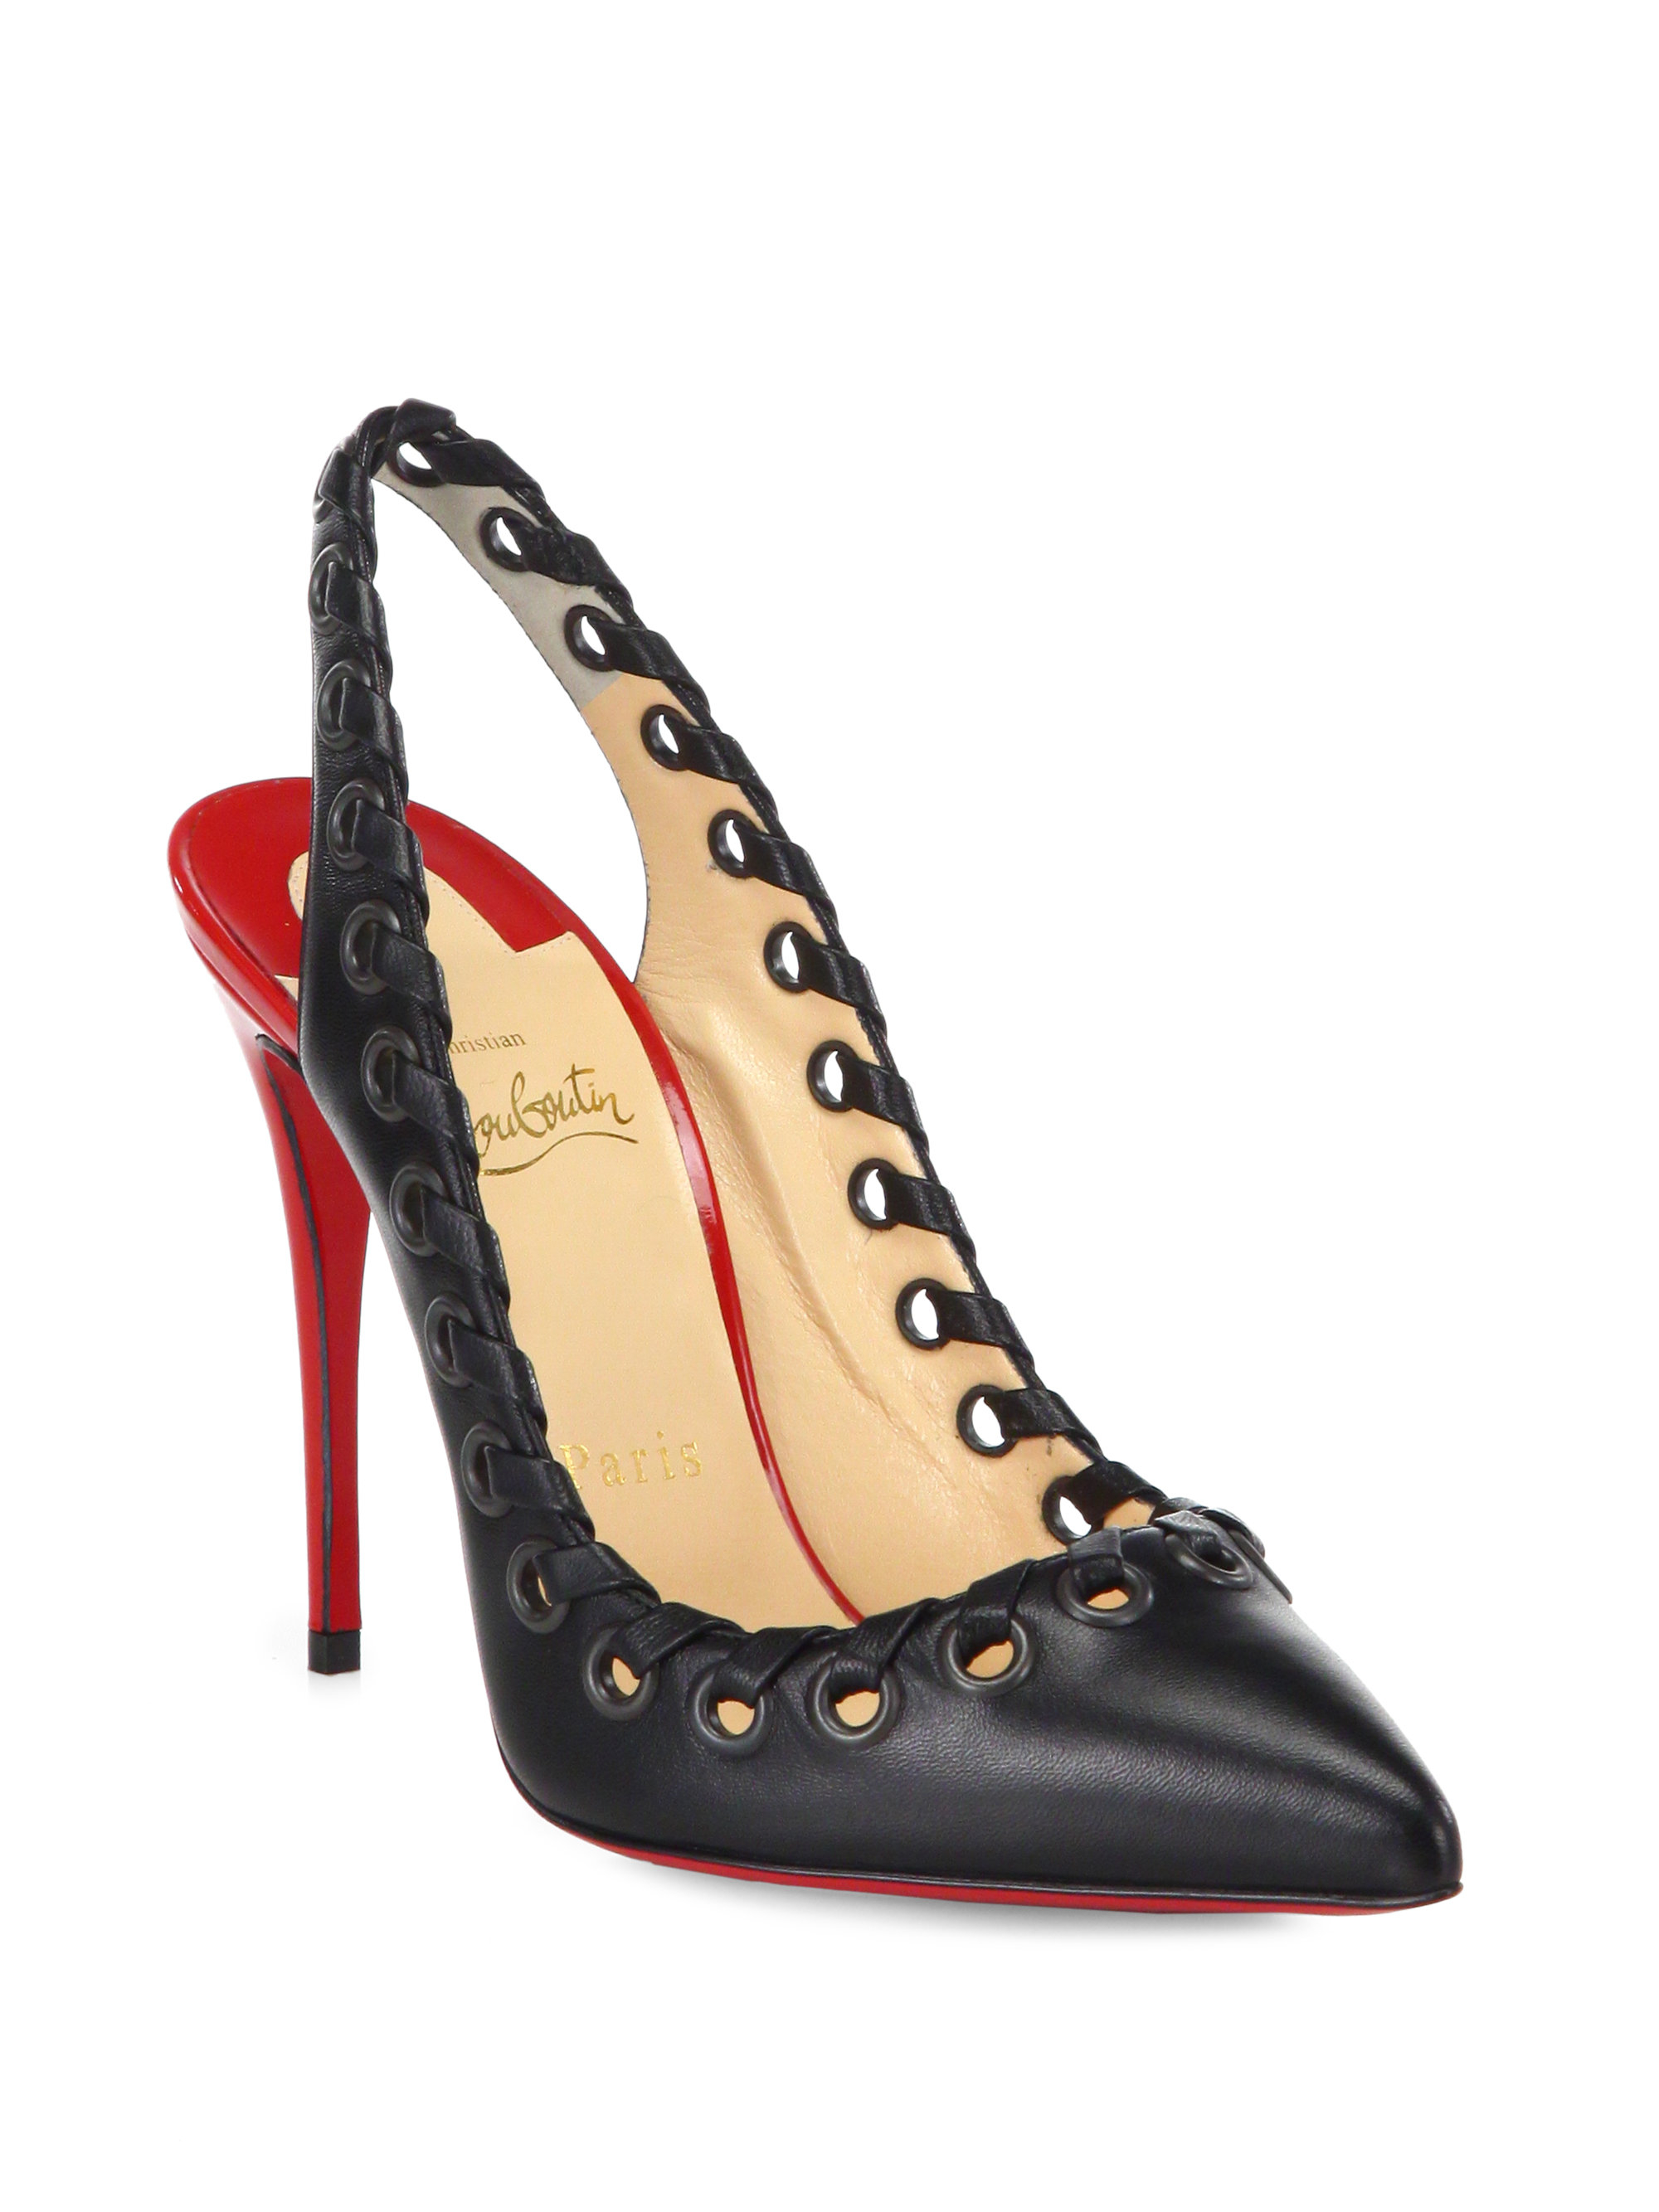 Christian Louboutin Red Ostri Whipstitch Leather Slingback Pumps